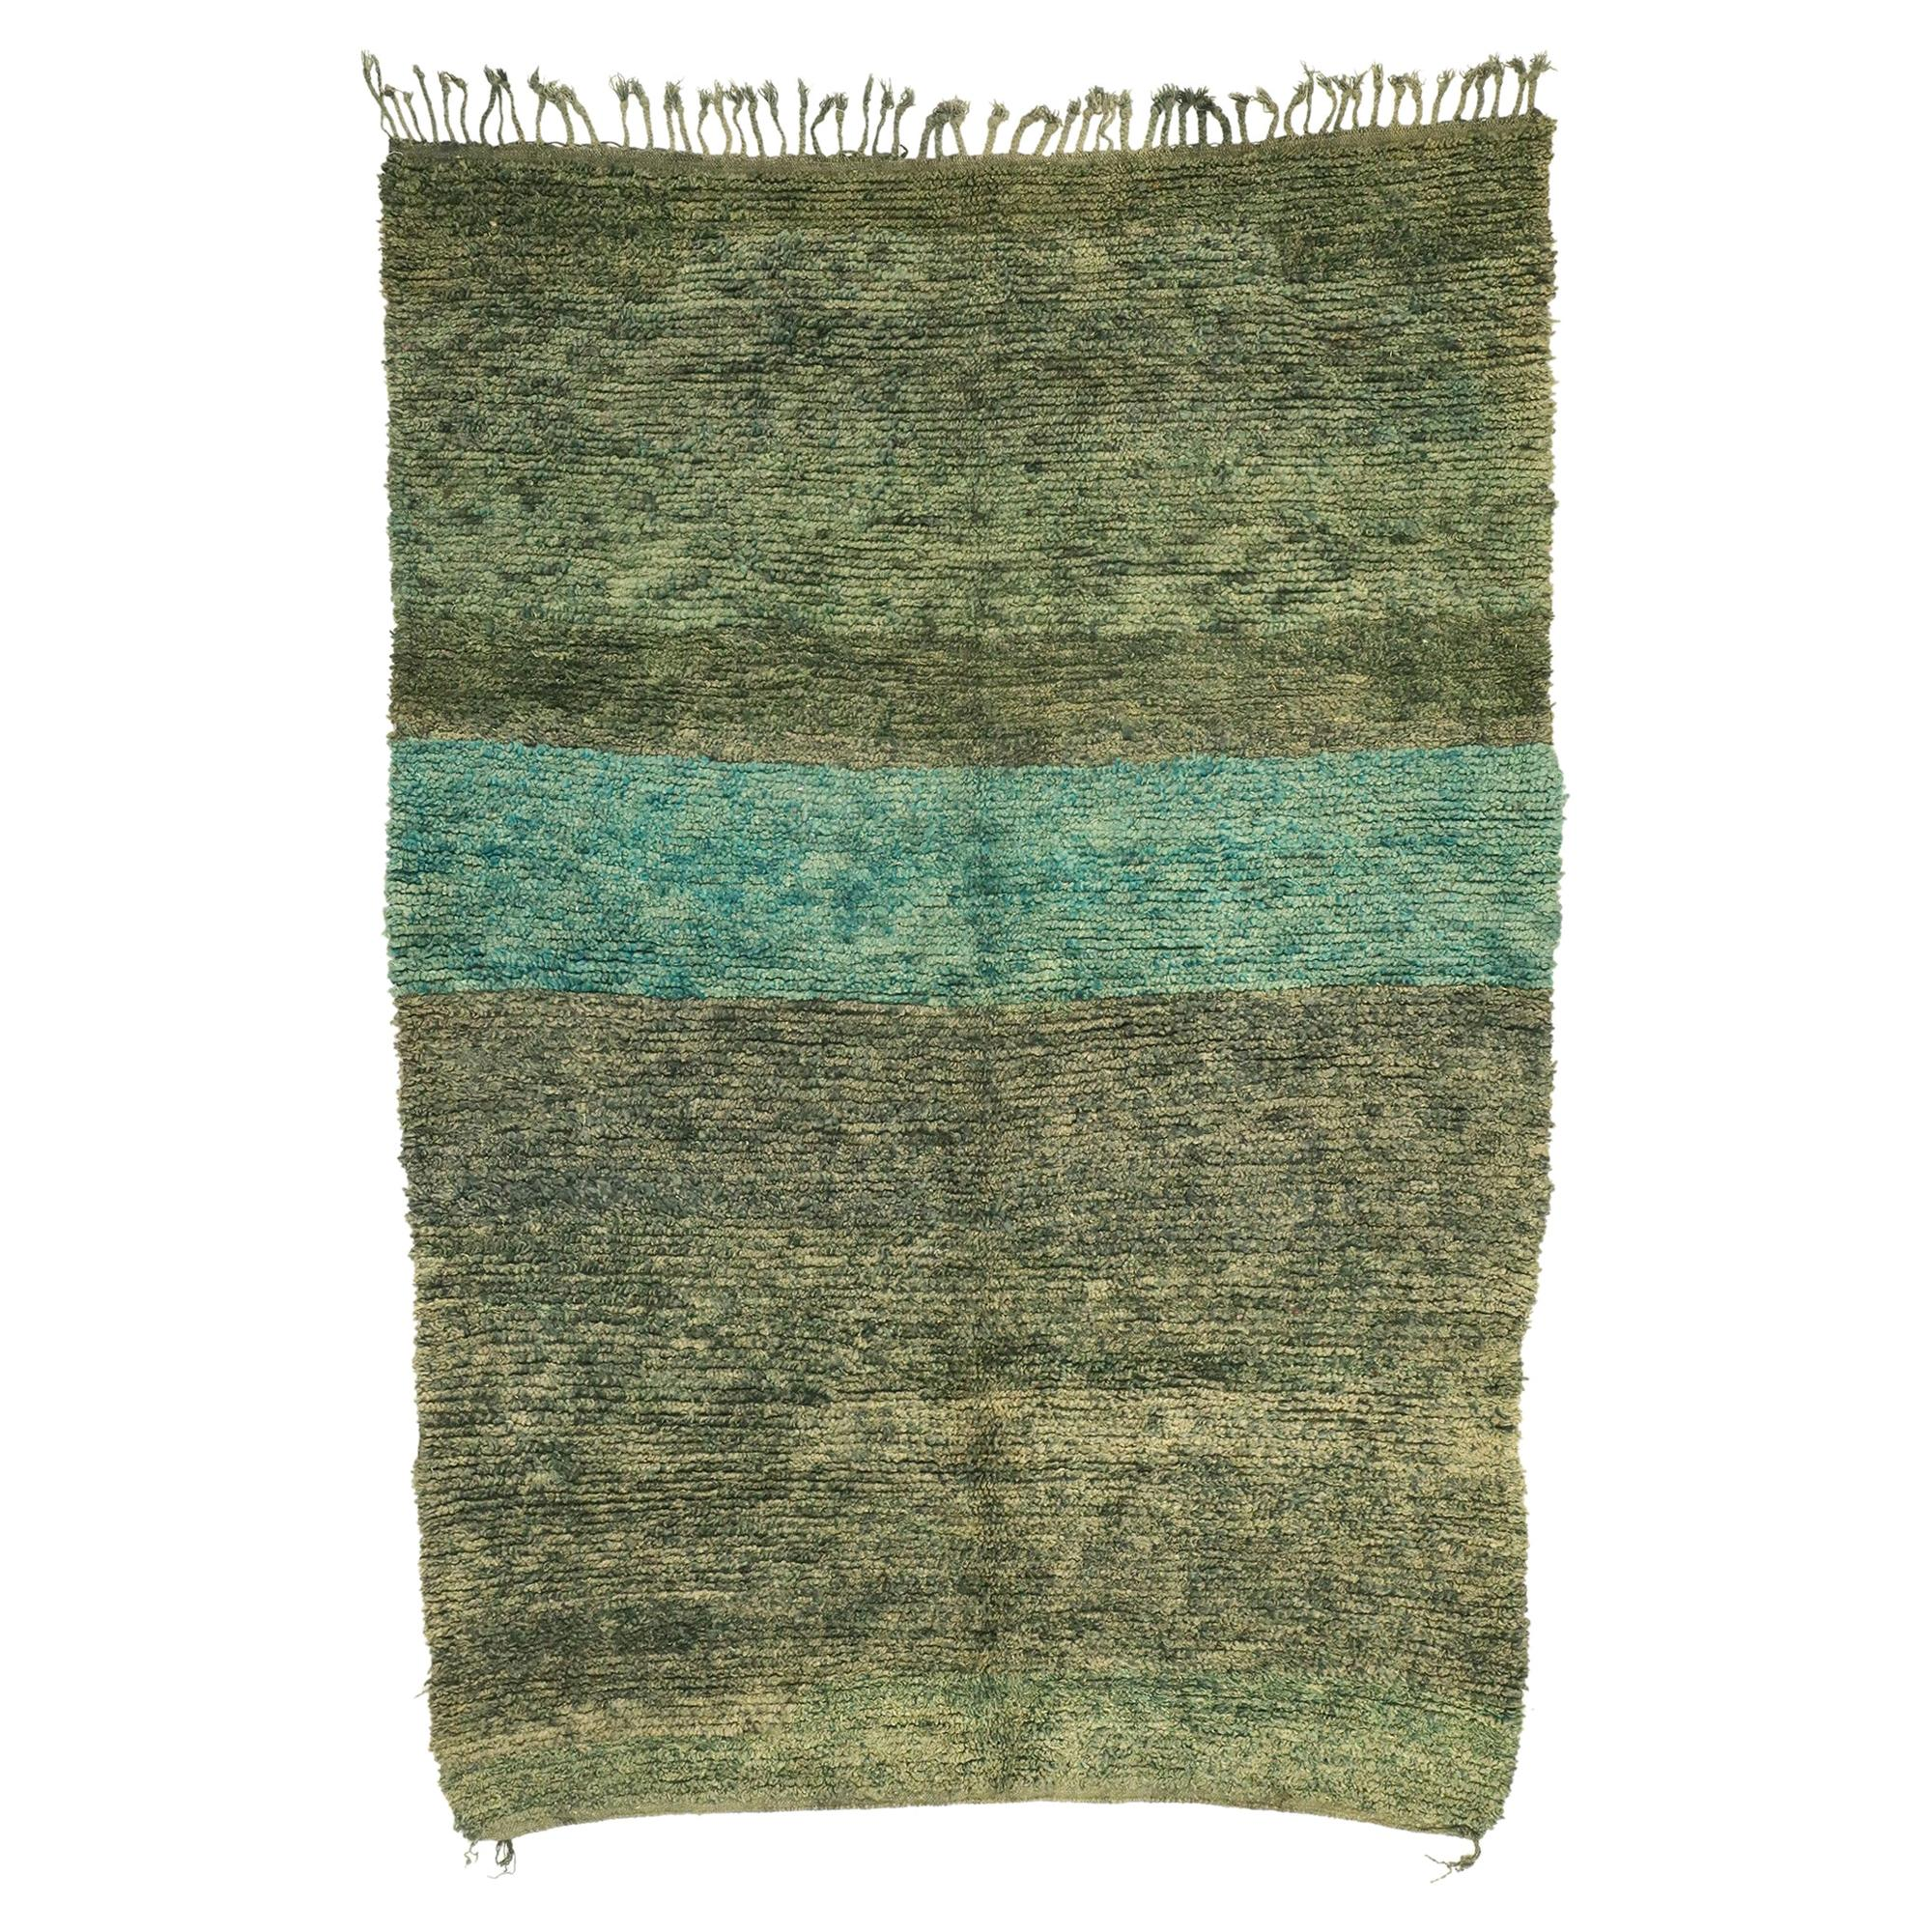 Vintage Berber Moroccan Rug with Abstract Expressionism and Biophilic Design